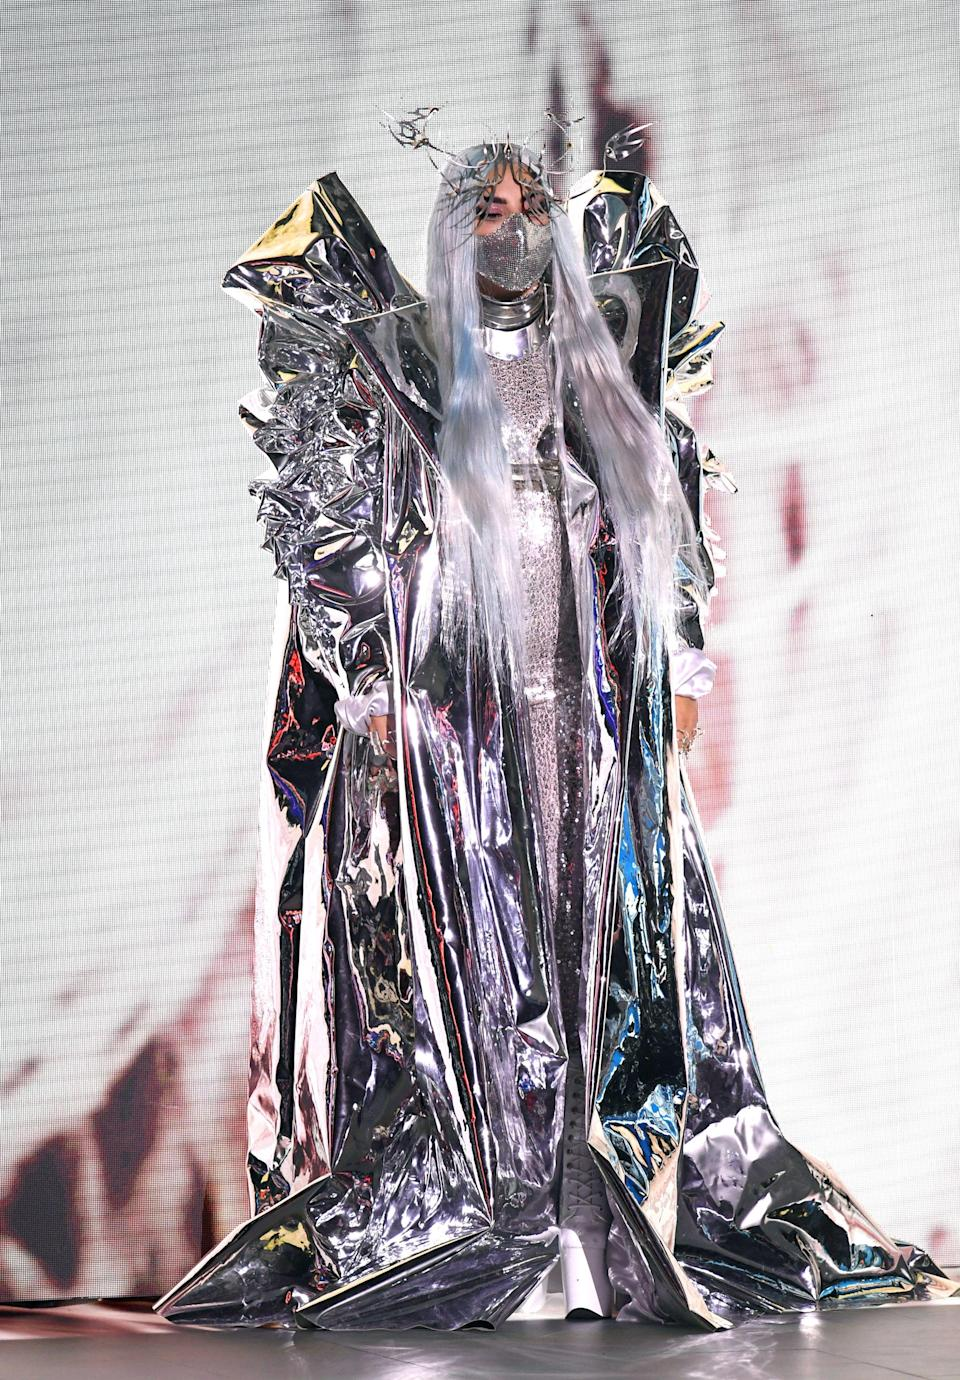 The 2020 VMAs were the perfect time for Lady Gaga to remind everyone of how fantabulous she is, and the <em>Chromatica</em> singer did not disappoint. This metallic look gave us major <em>Game of Thrones</em> vibes, and we were here for it.